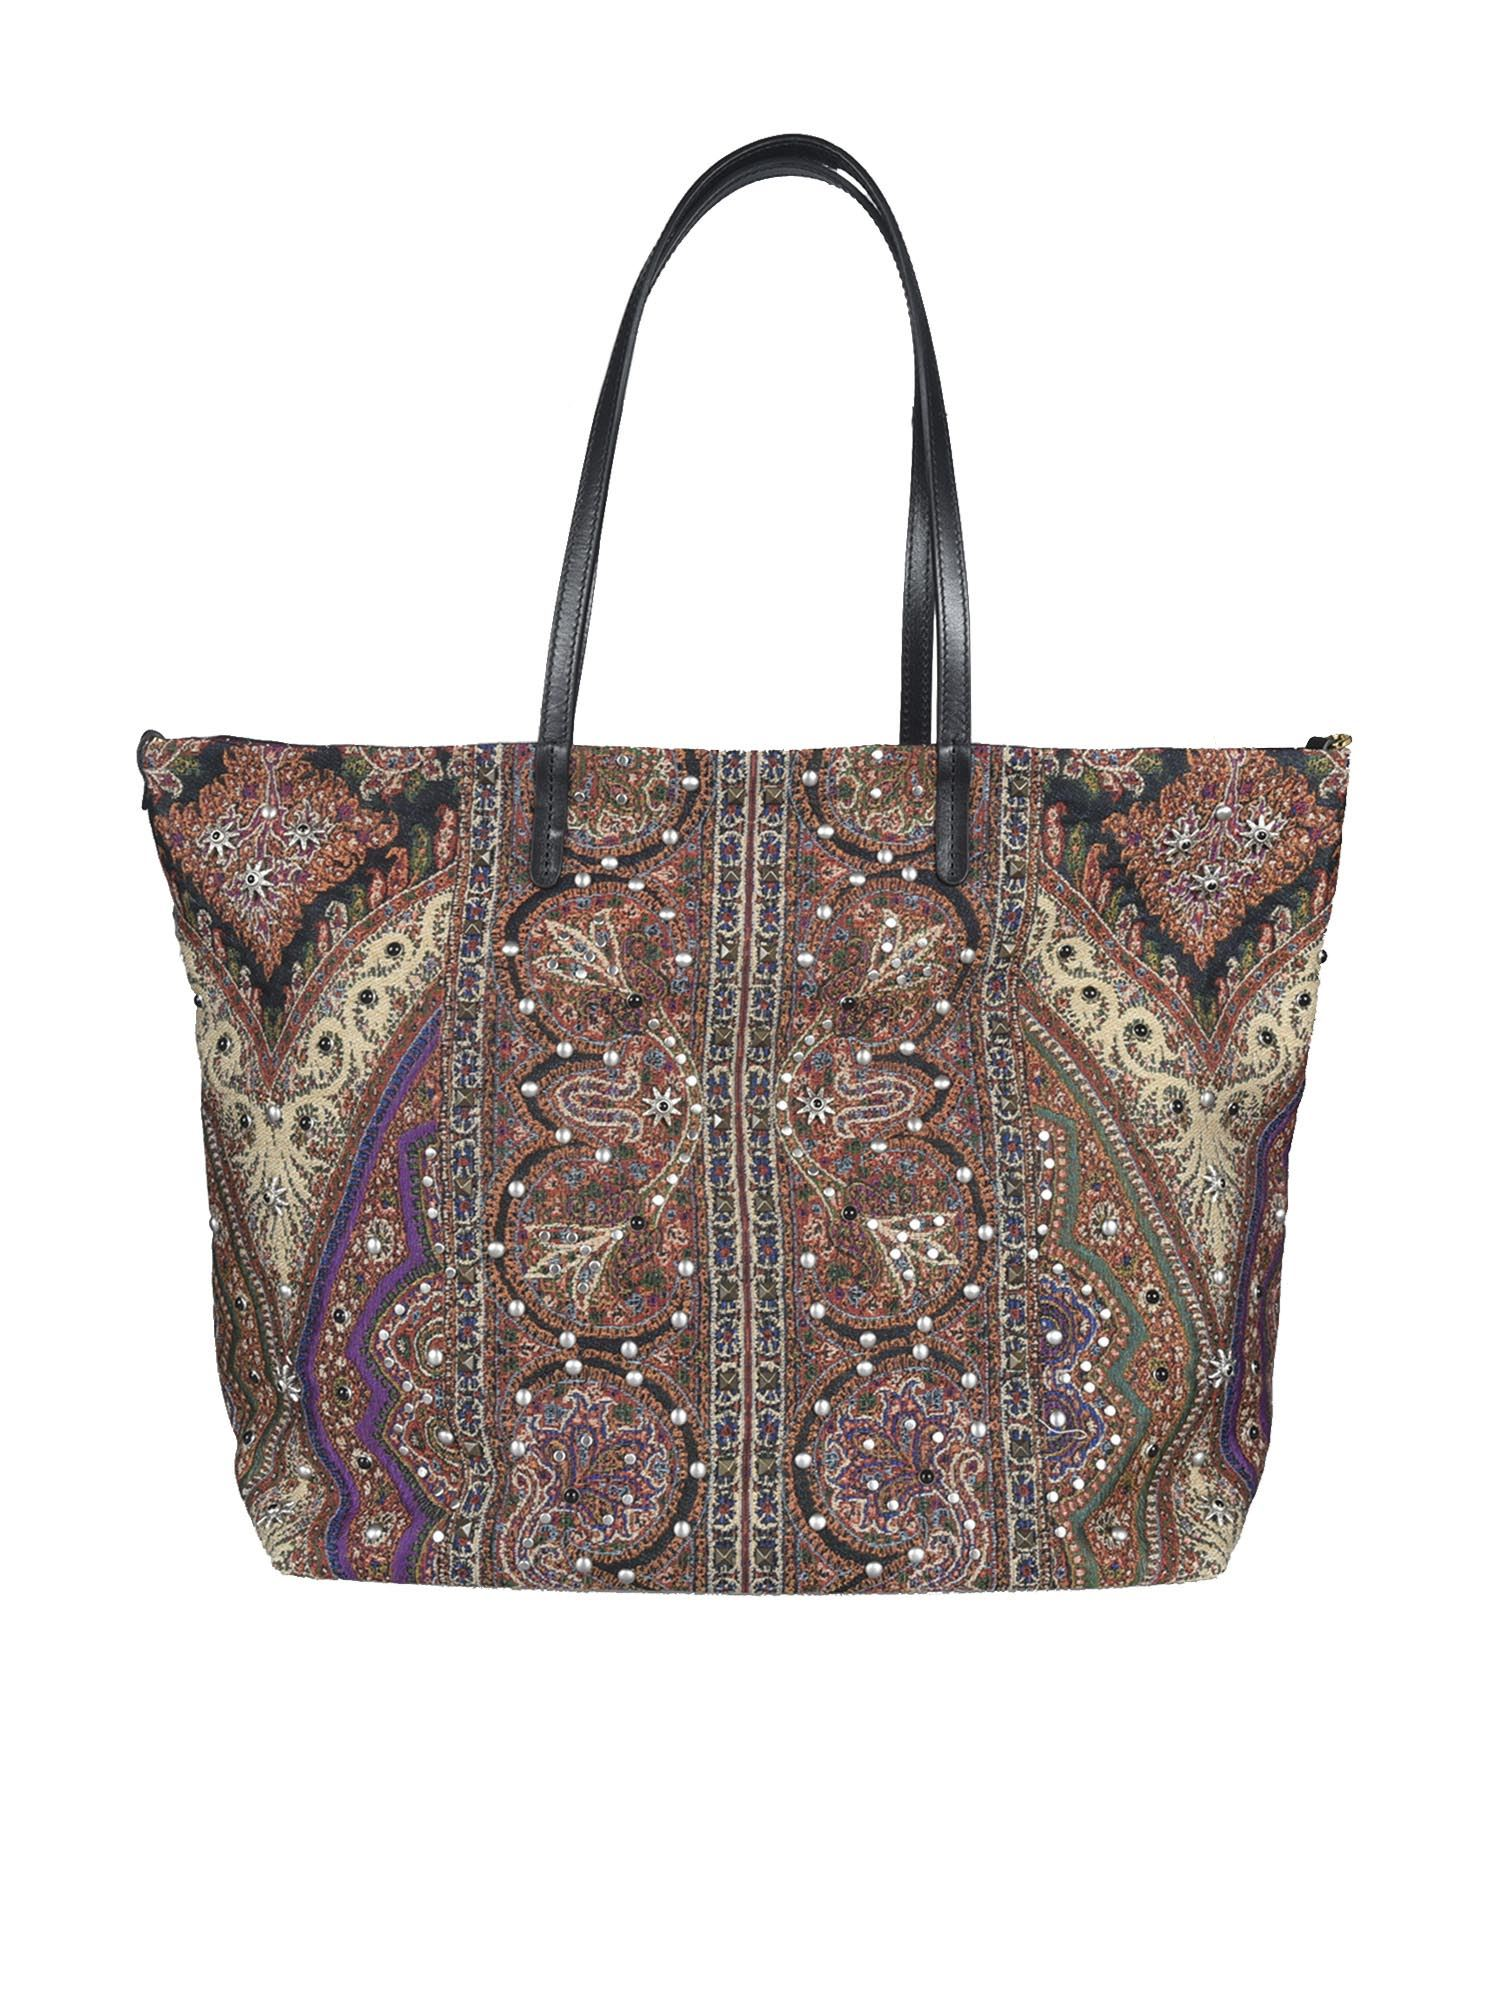 ETRO Leathers MULTICOLOR PAISLEY PATTERN BAG IN BLACK